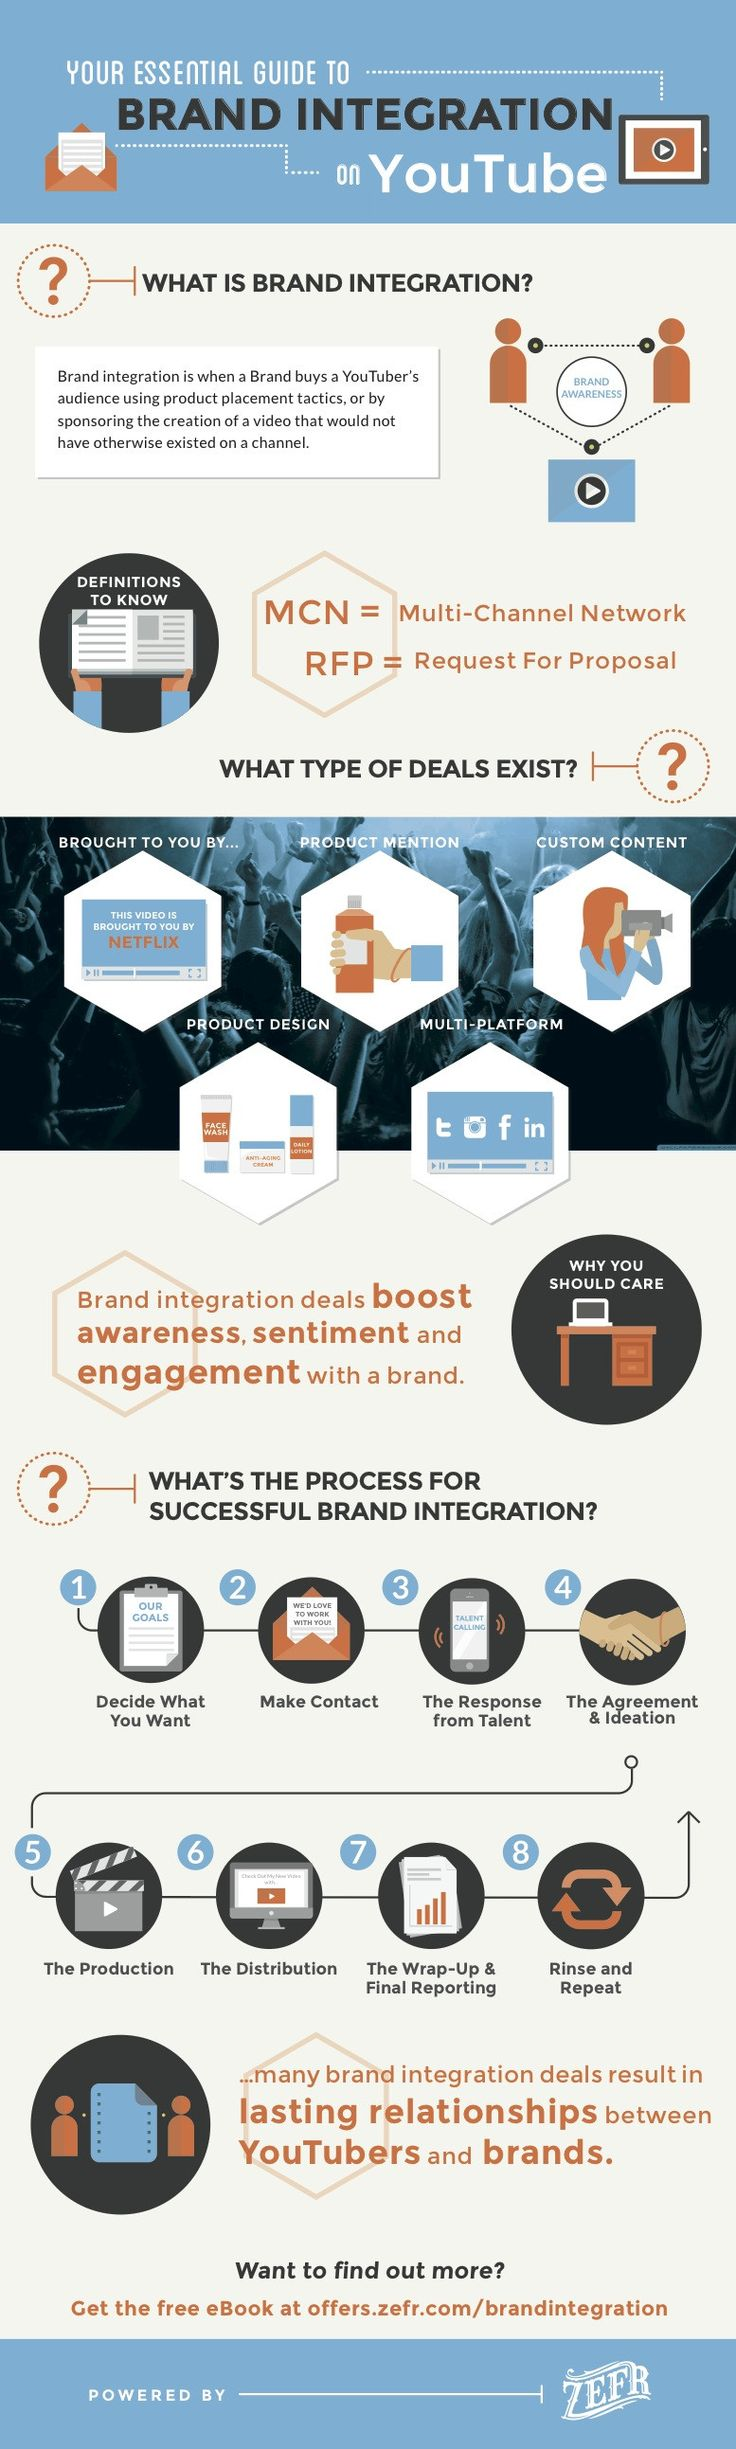 Infographic: Your Essential Guide to Brand Integration on YouTube #Infographic #socialmedia #marketing #southcoastsocial #youtube